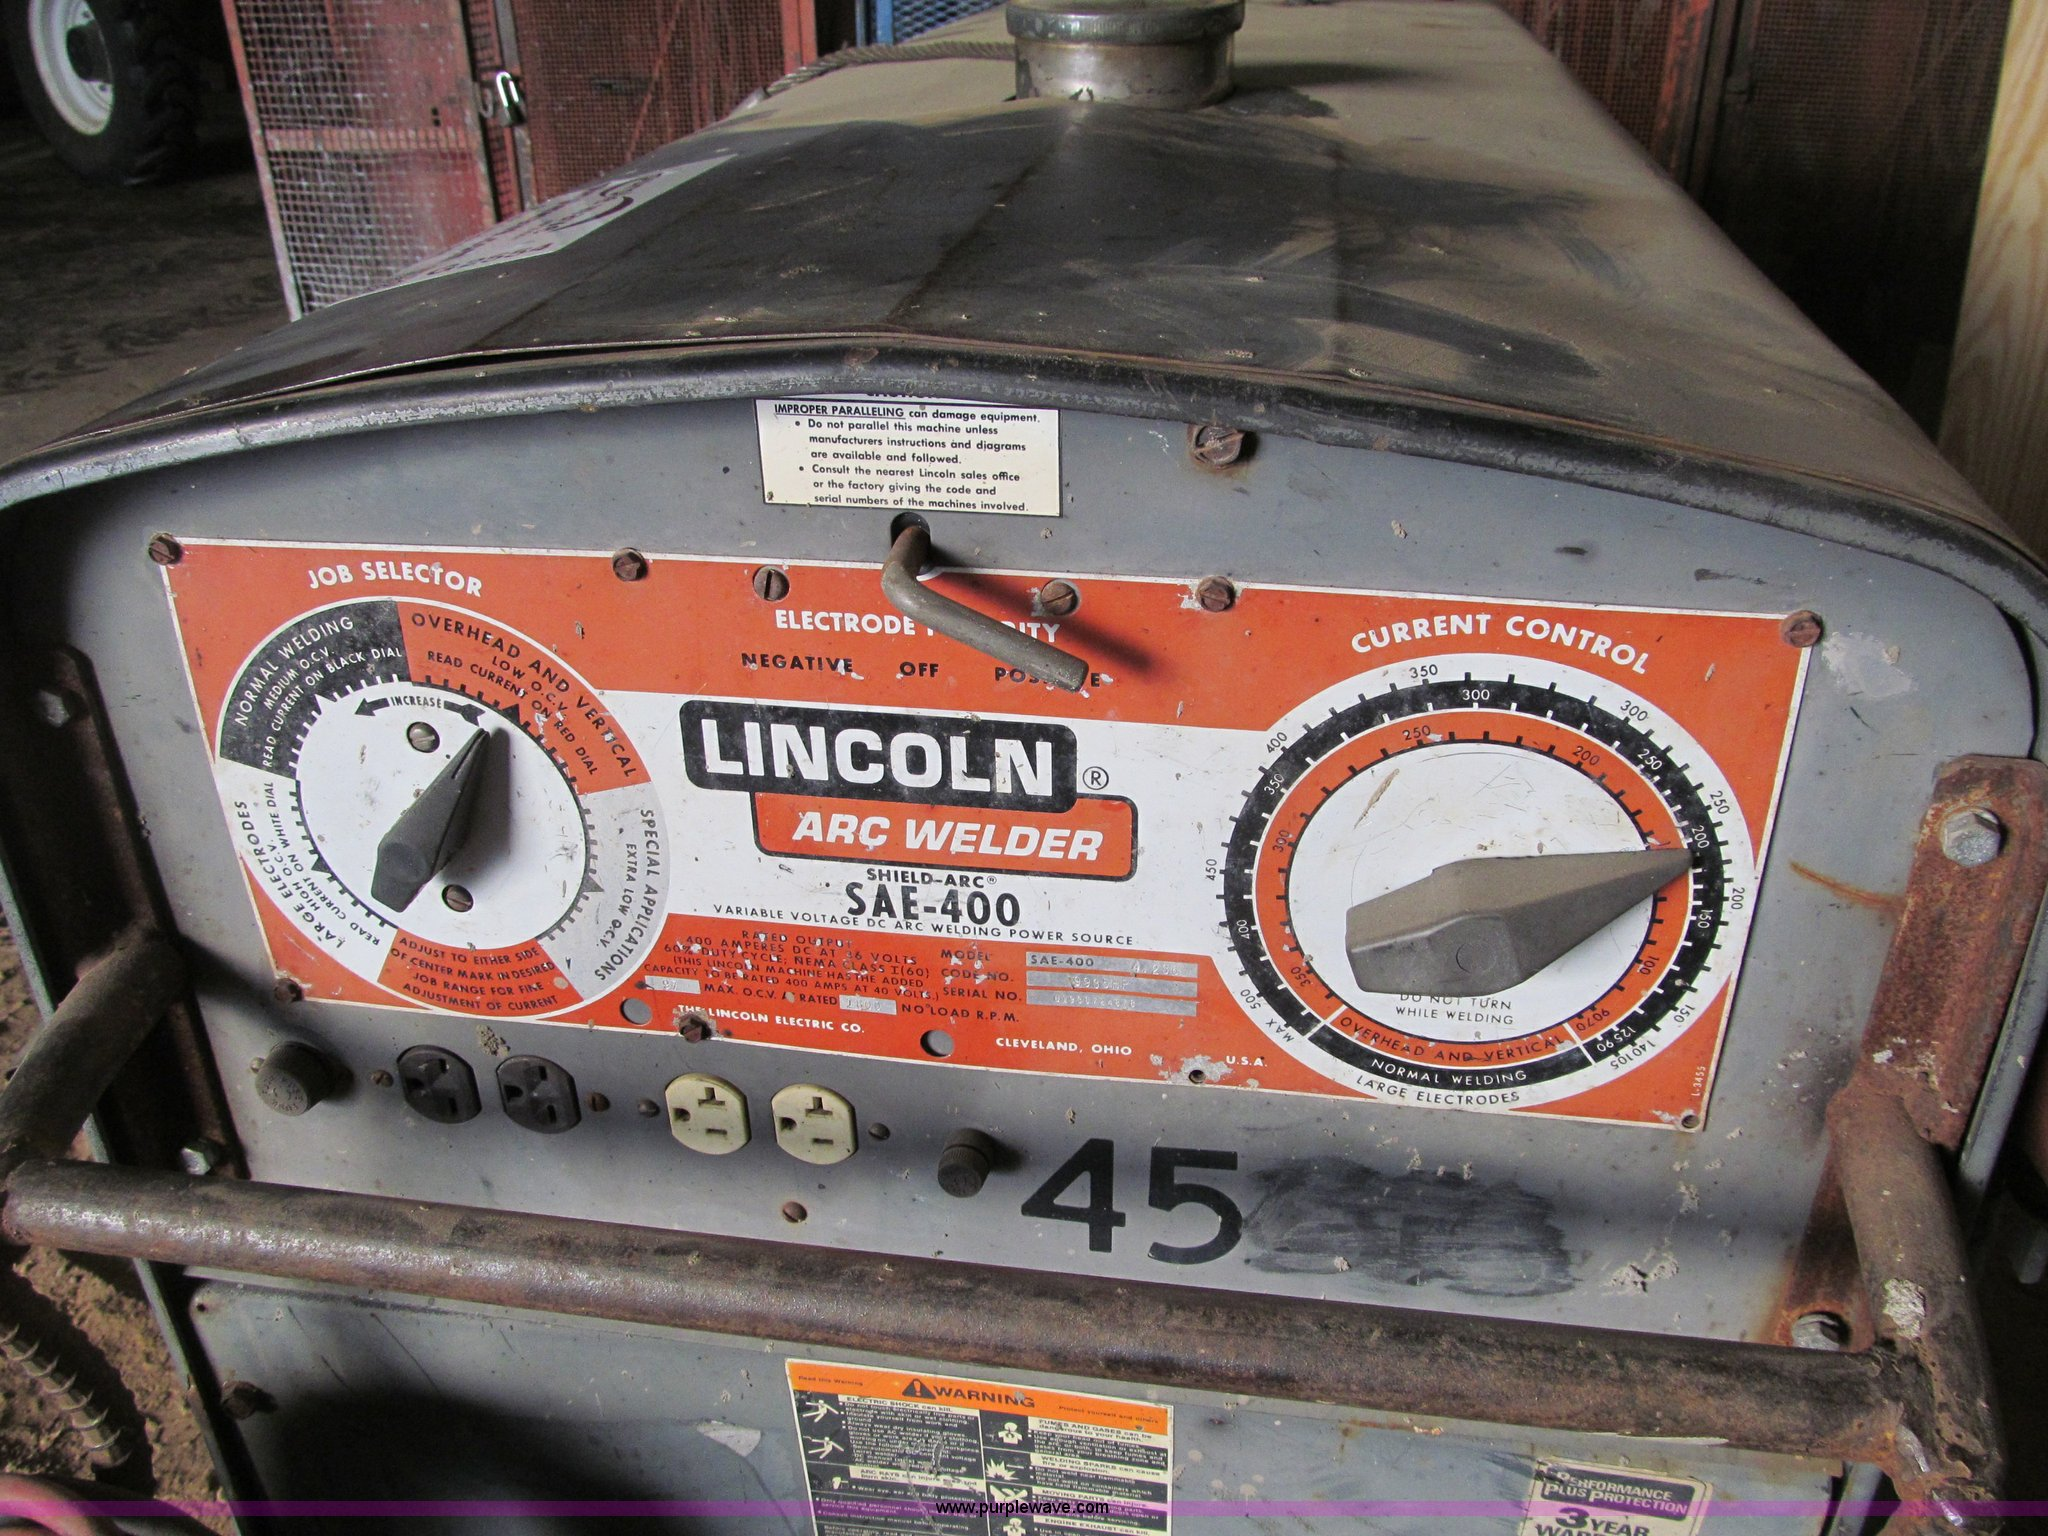 G2554F welders lincoln sam 400 wiring diagram wiring diagrams lincoln dc-400 wiring diagram at virtualis.co